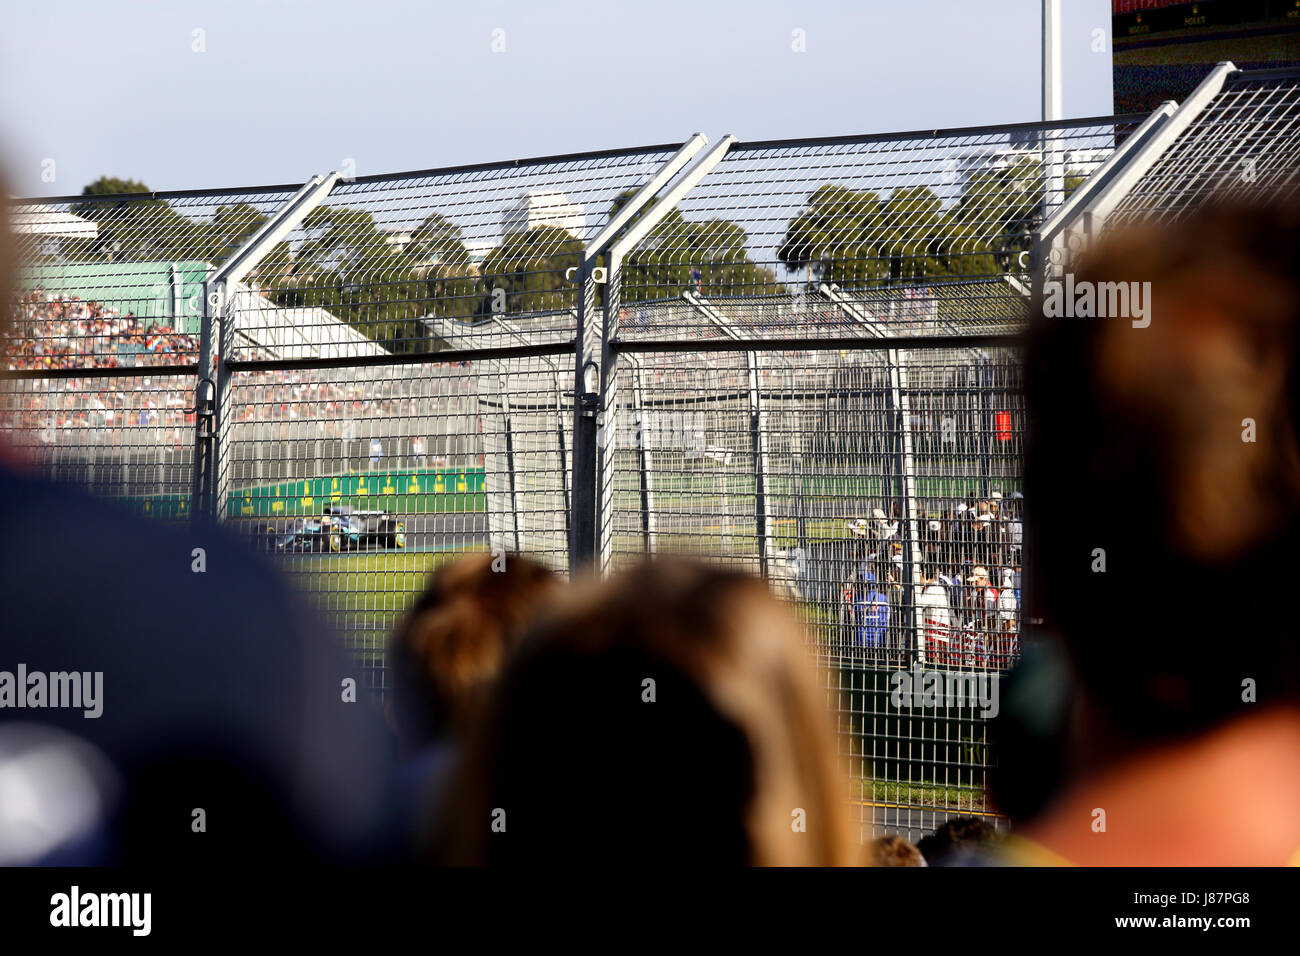 A fleeting glimpse of Lewis Hamilton through the heads of F1 fans. Please see description. - Stock Image